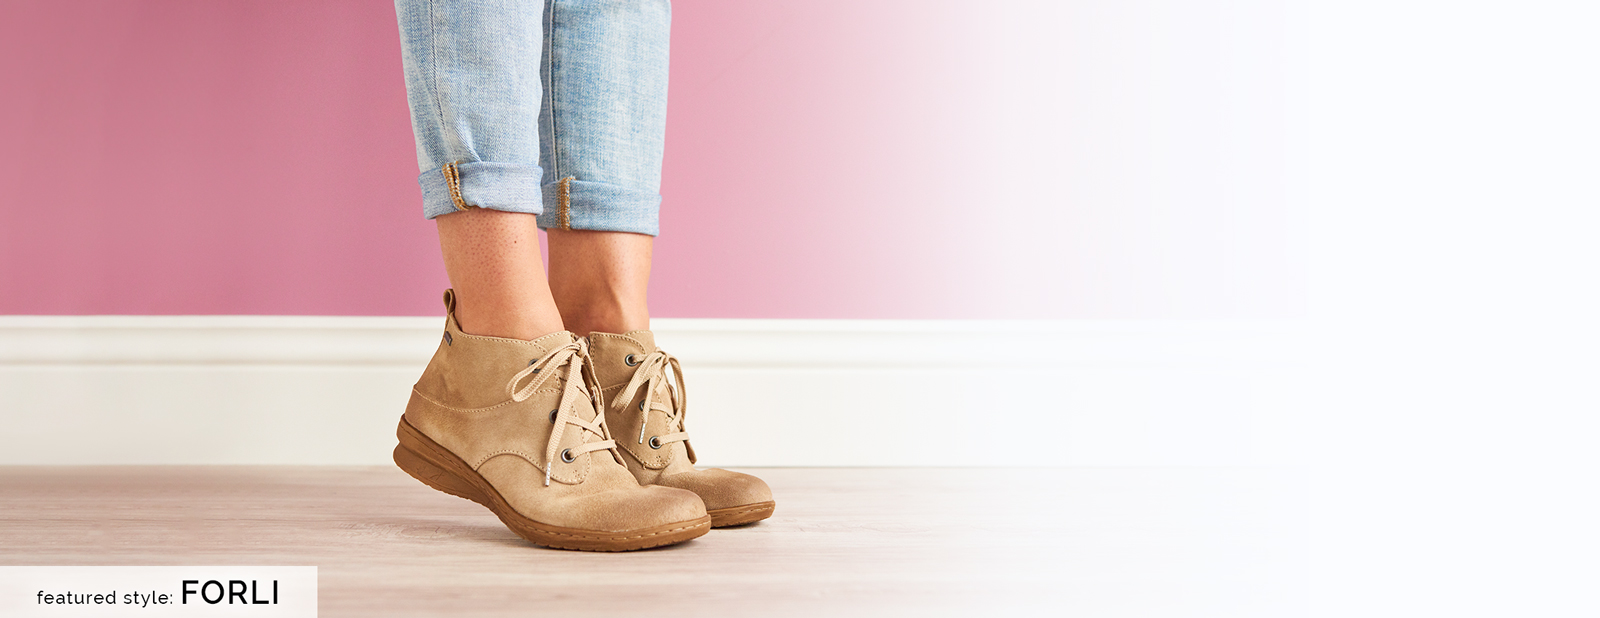 Featured style: Forli boot in cashmere suede (tan).